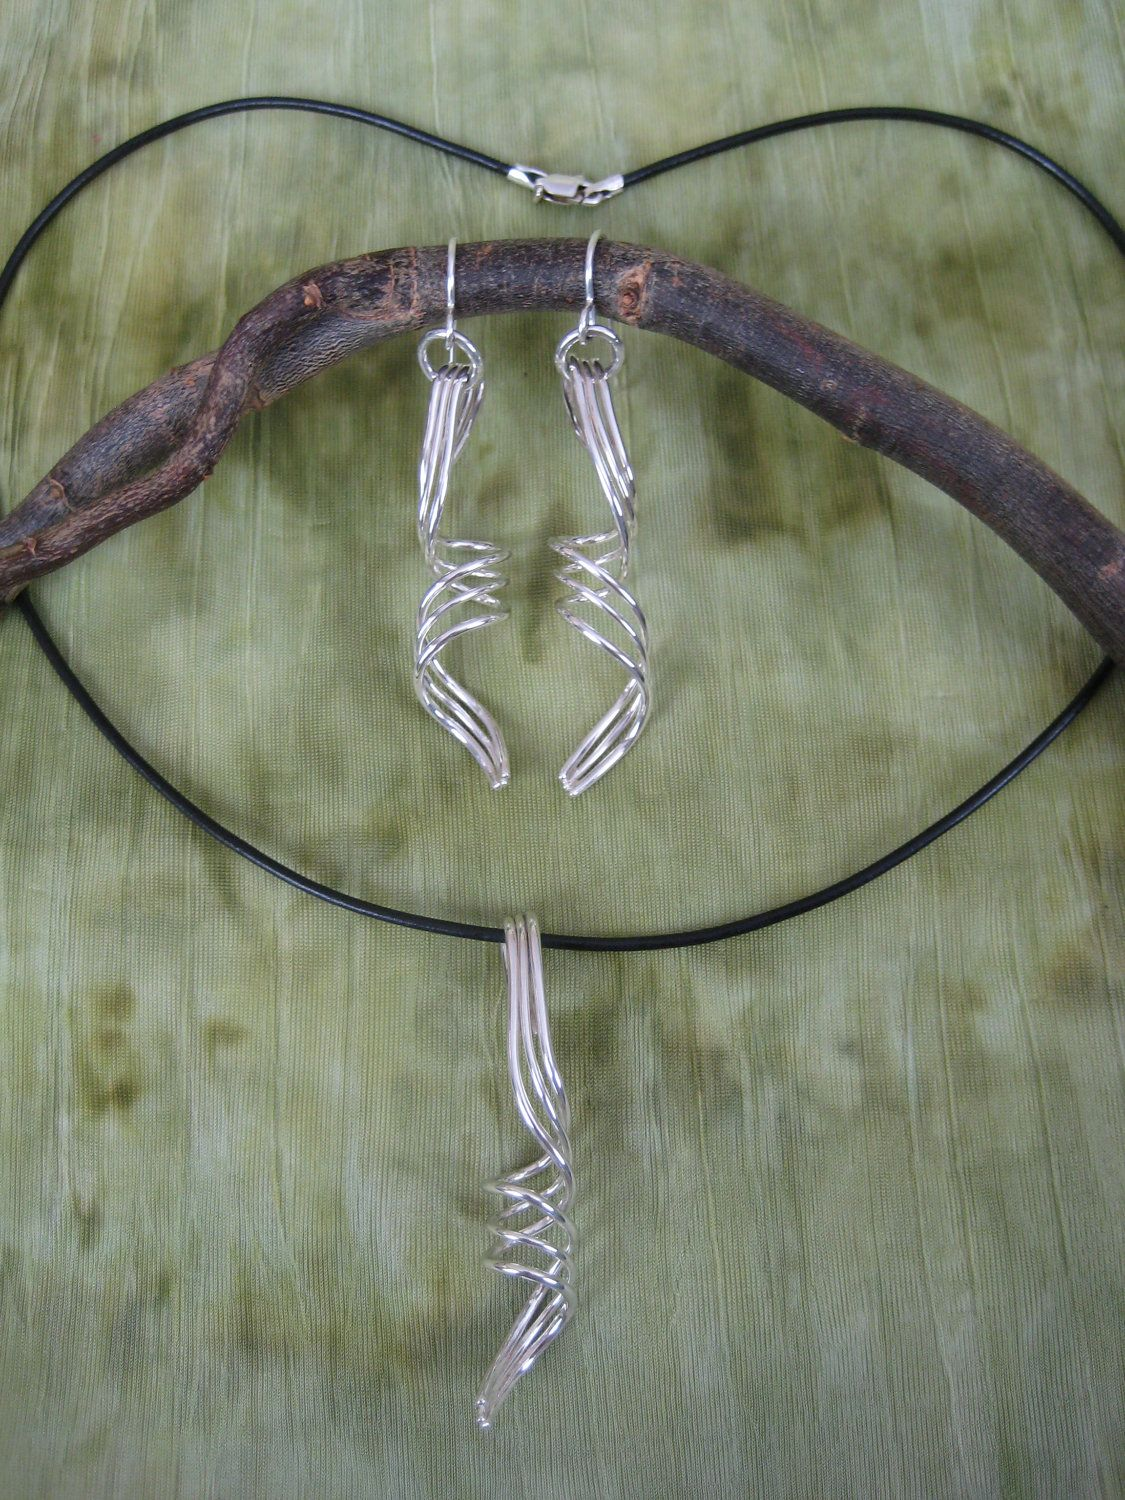 One of a kind spiral earrings and necklace pendant set sterling